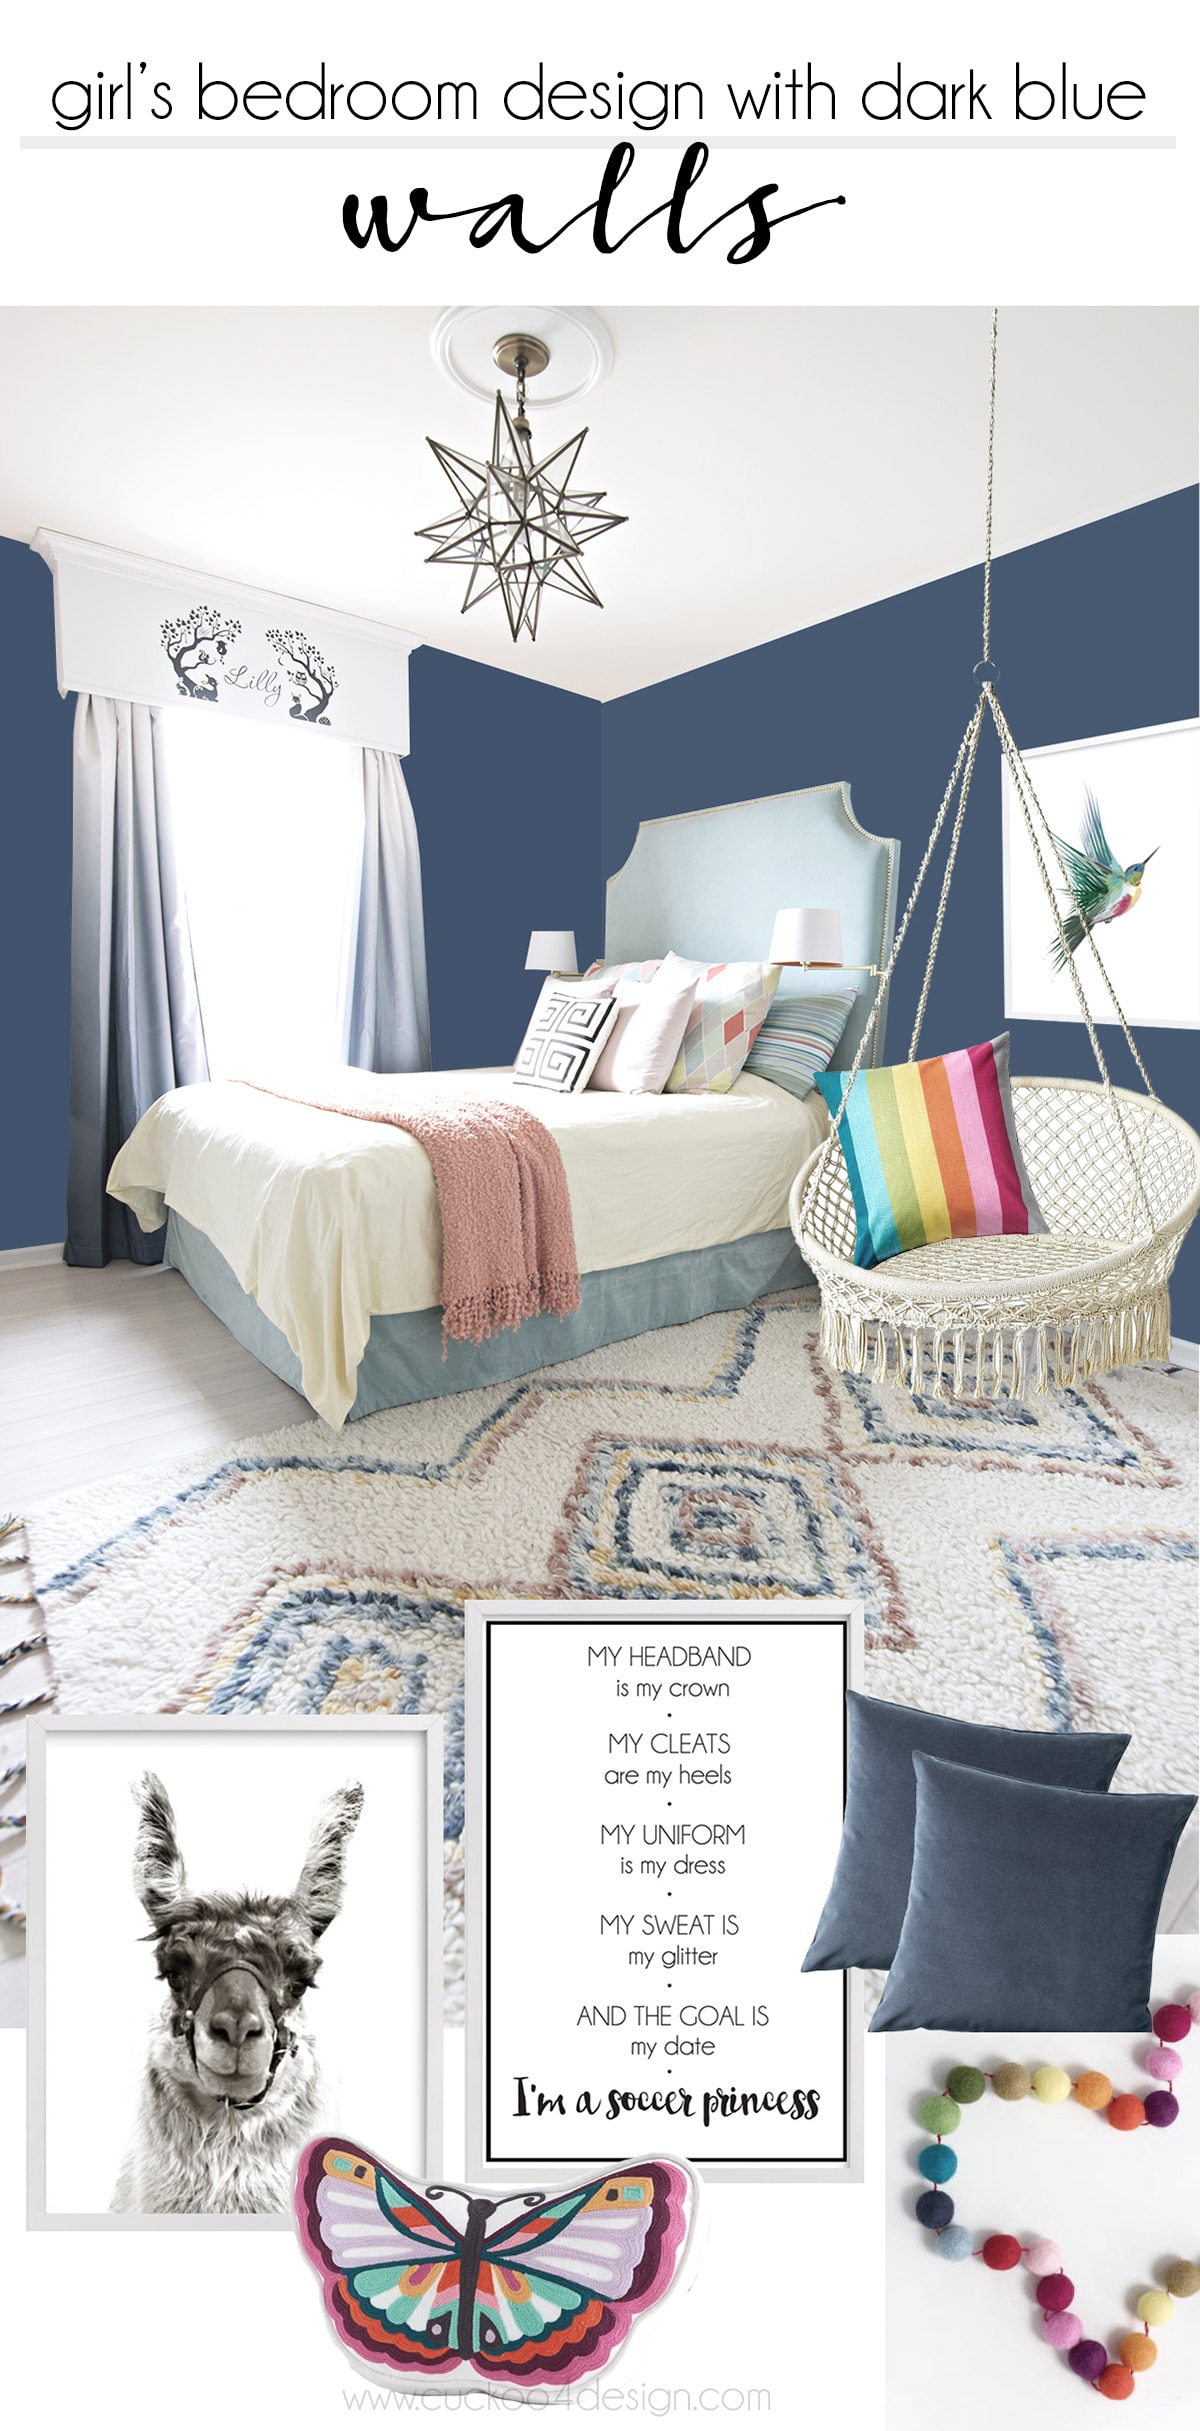 Girls bedroom with dark blue walls | hanging macrame chair | rainbow color decor | humming bird and lama art | soccer quote | turquoise bed